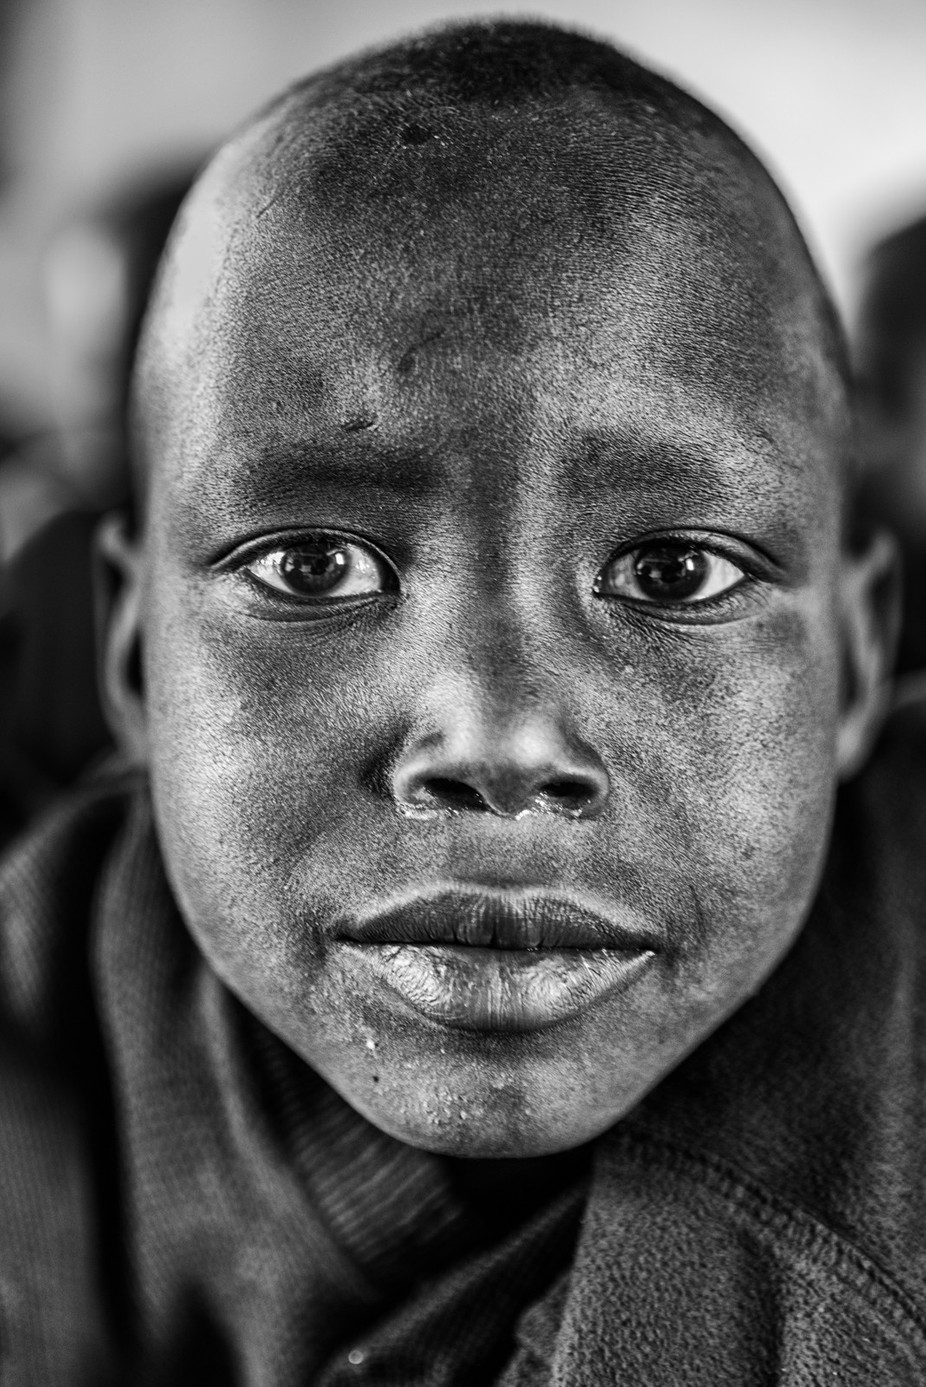 Eyes by giovannivolpe - A Black And White World Photo Contest